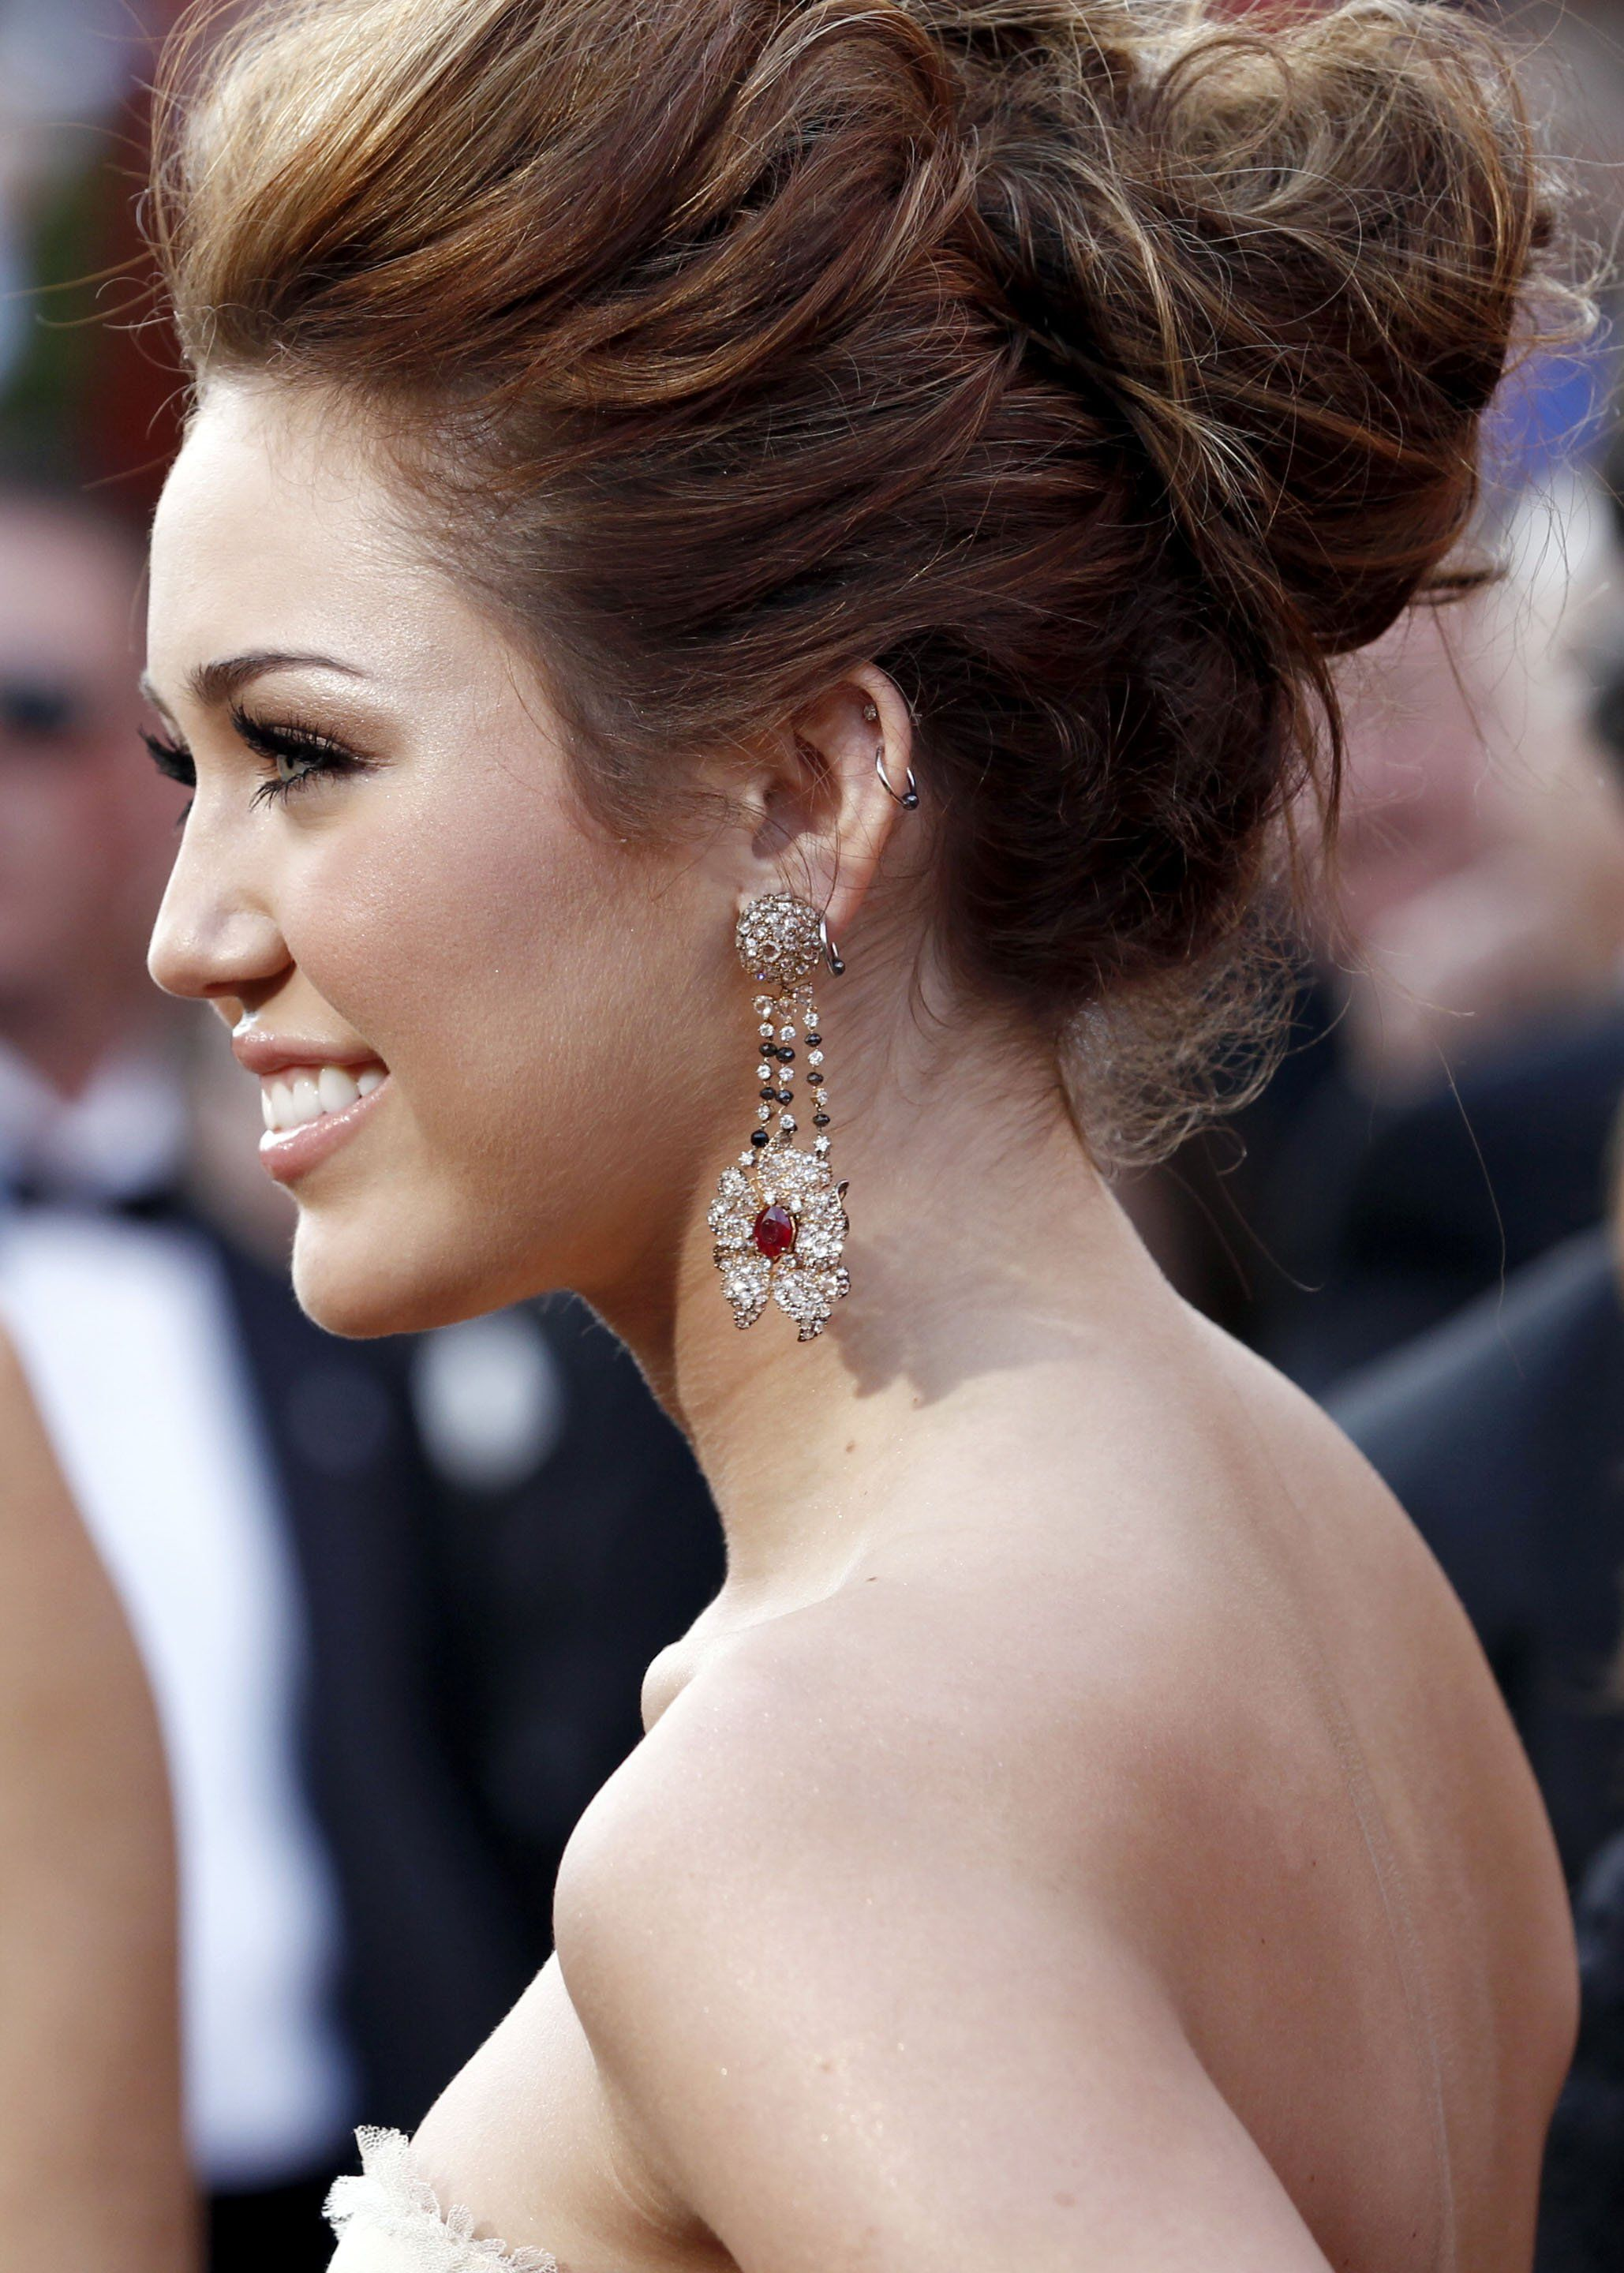 Miley Cyrus Updo Hairstyles Hair Color Ideas And Styles For 2018